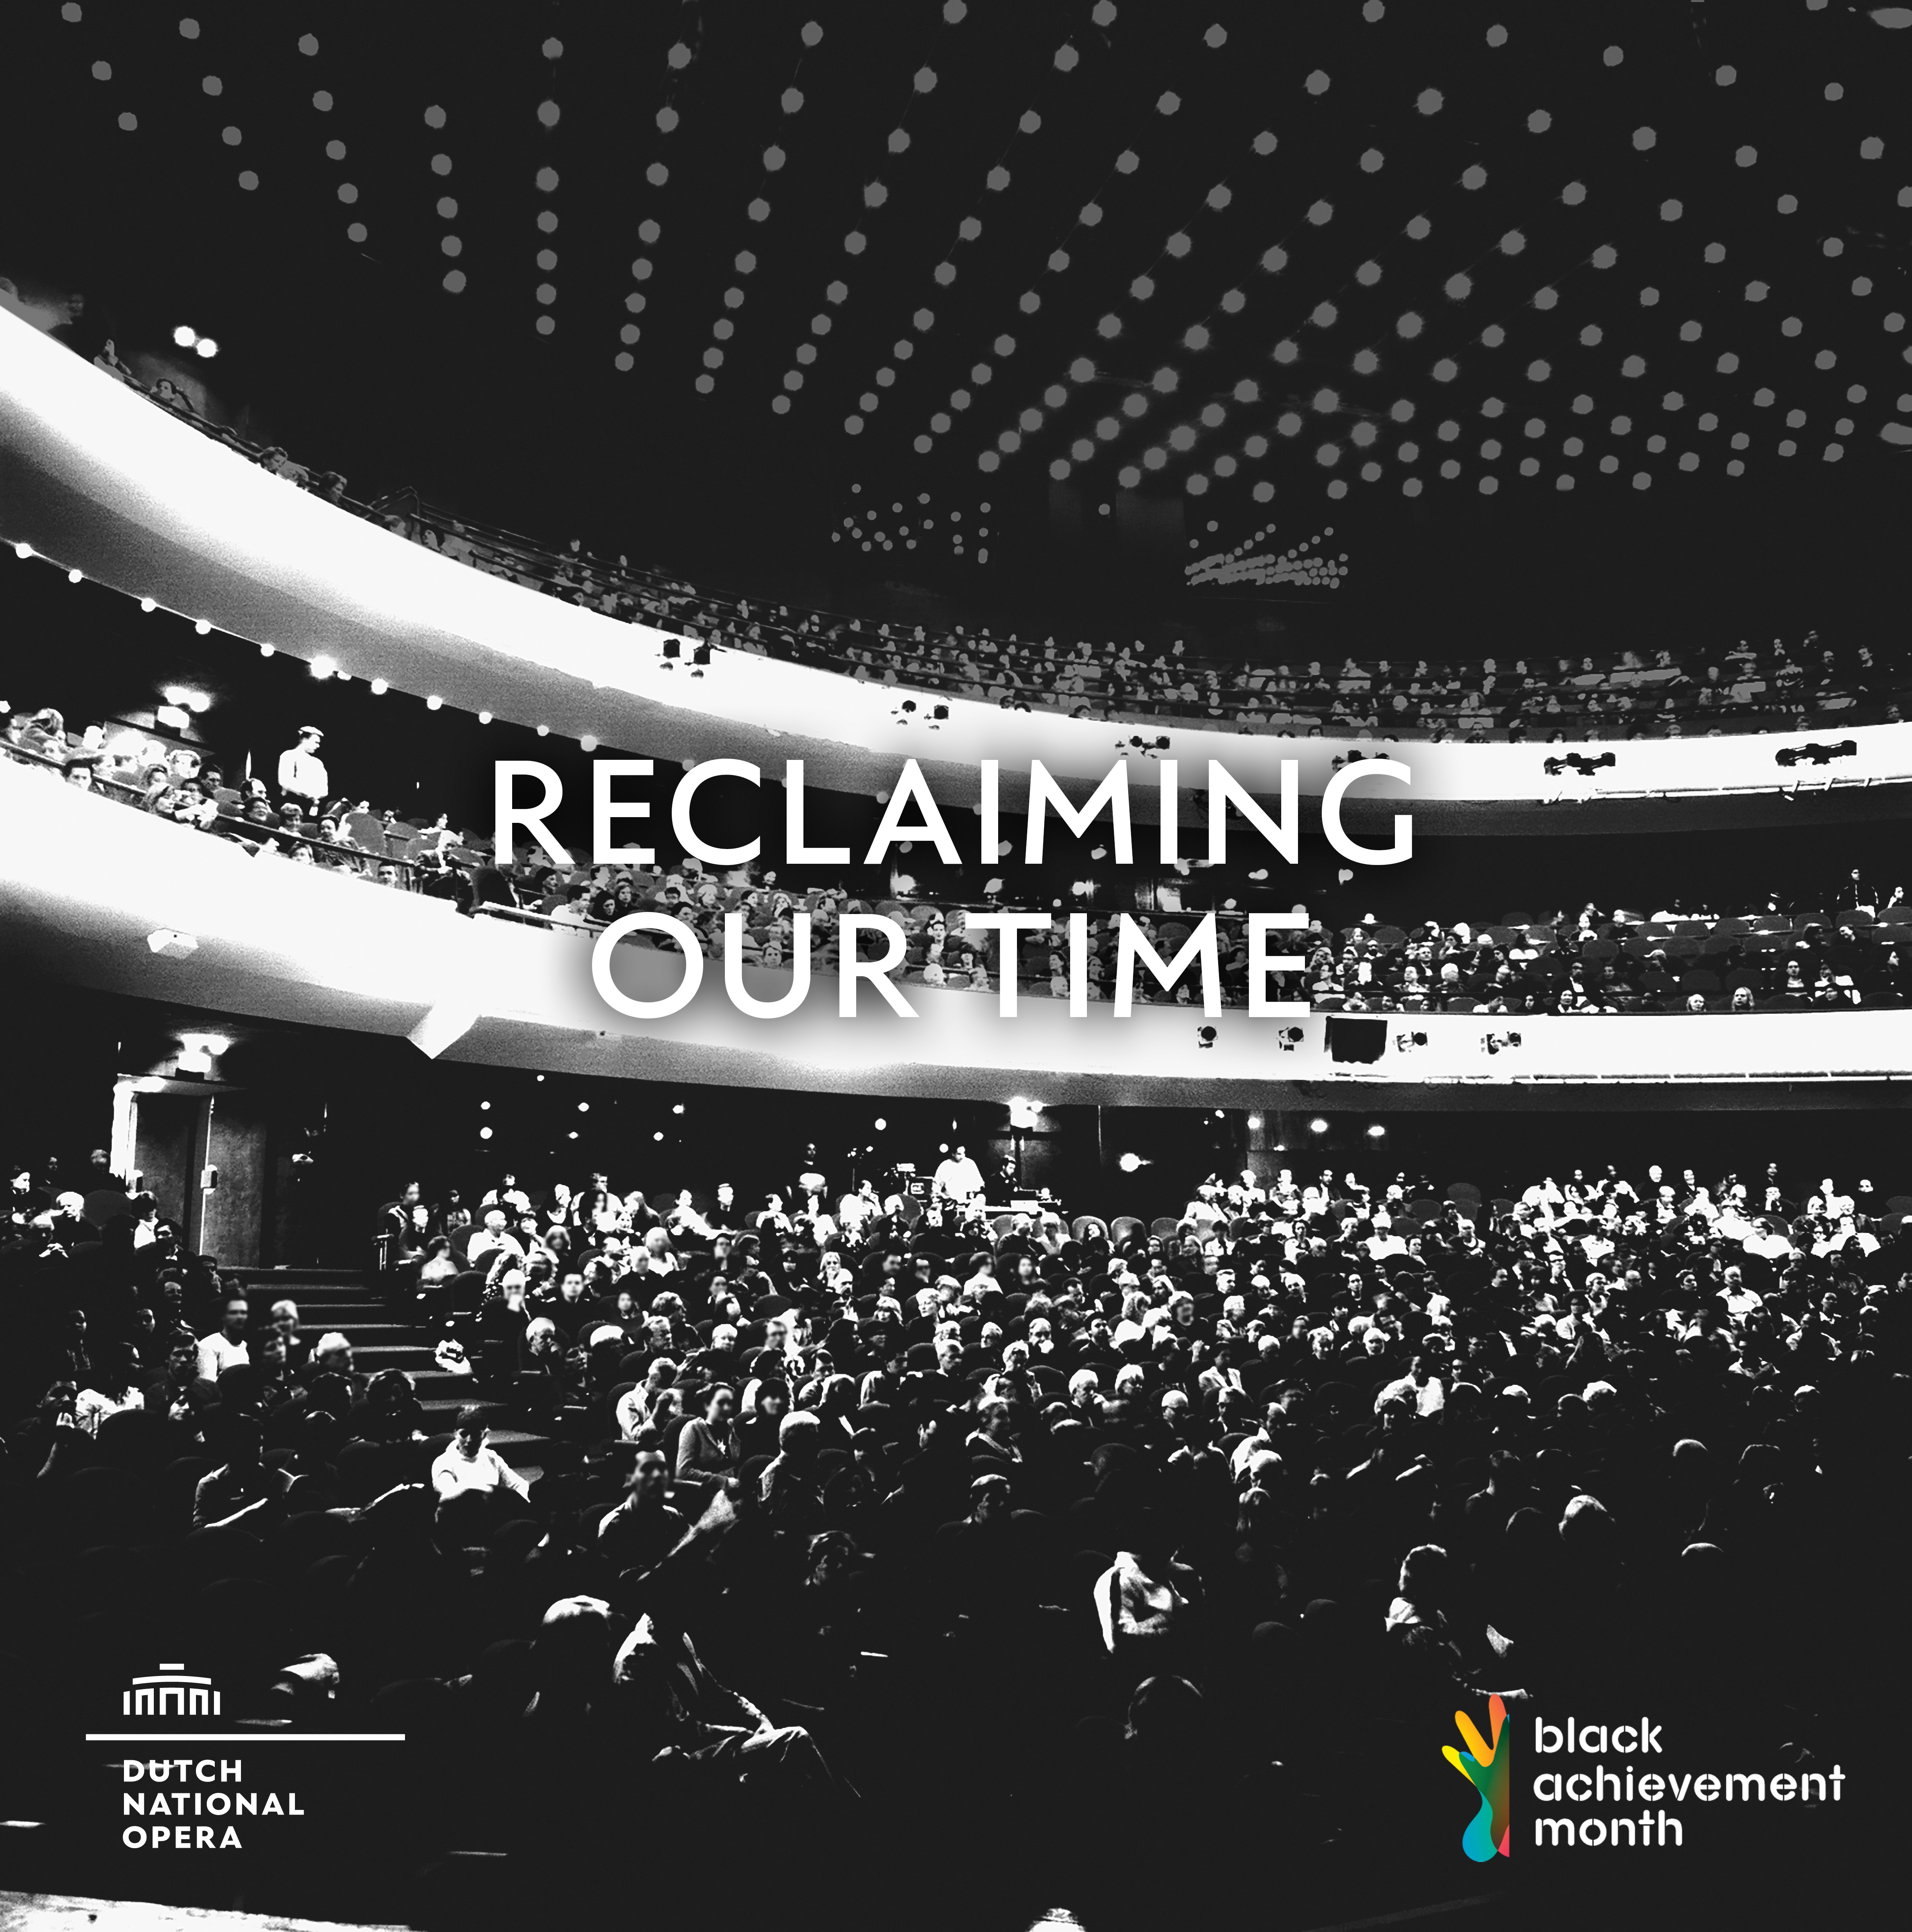 Reclaiming Our Time